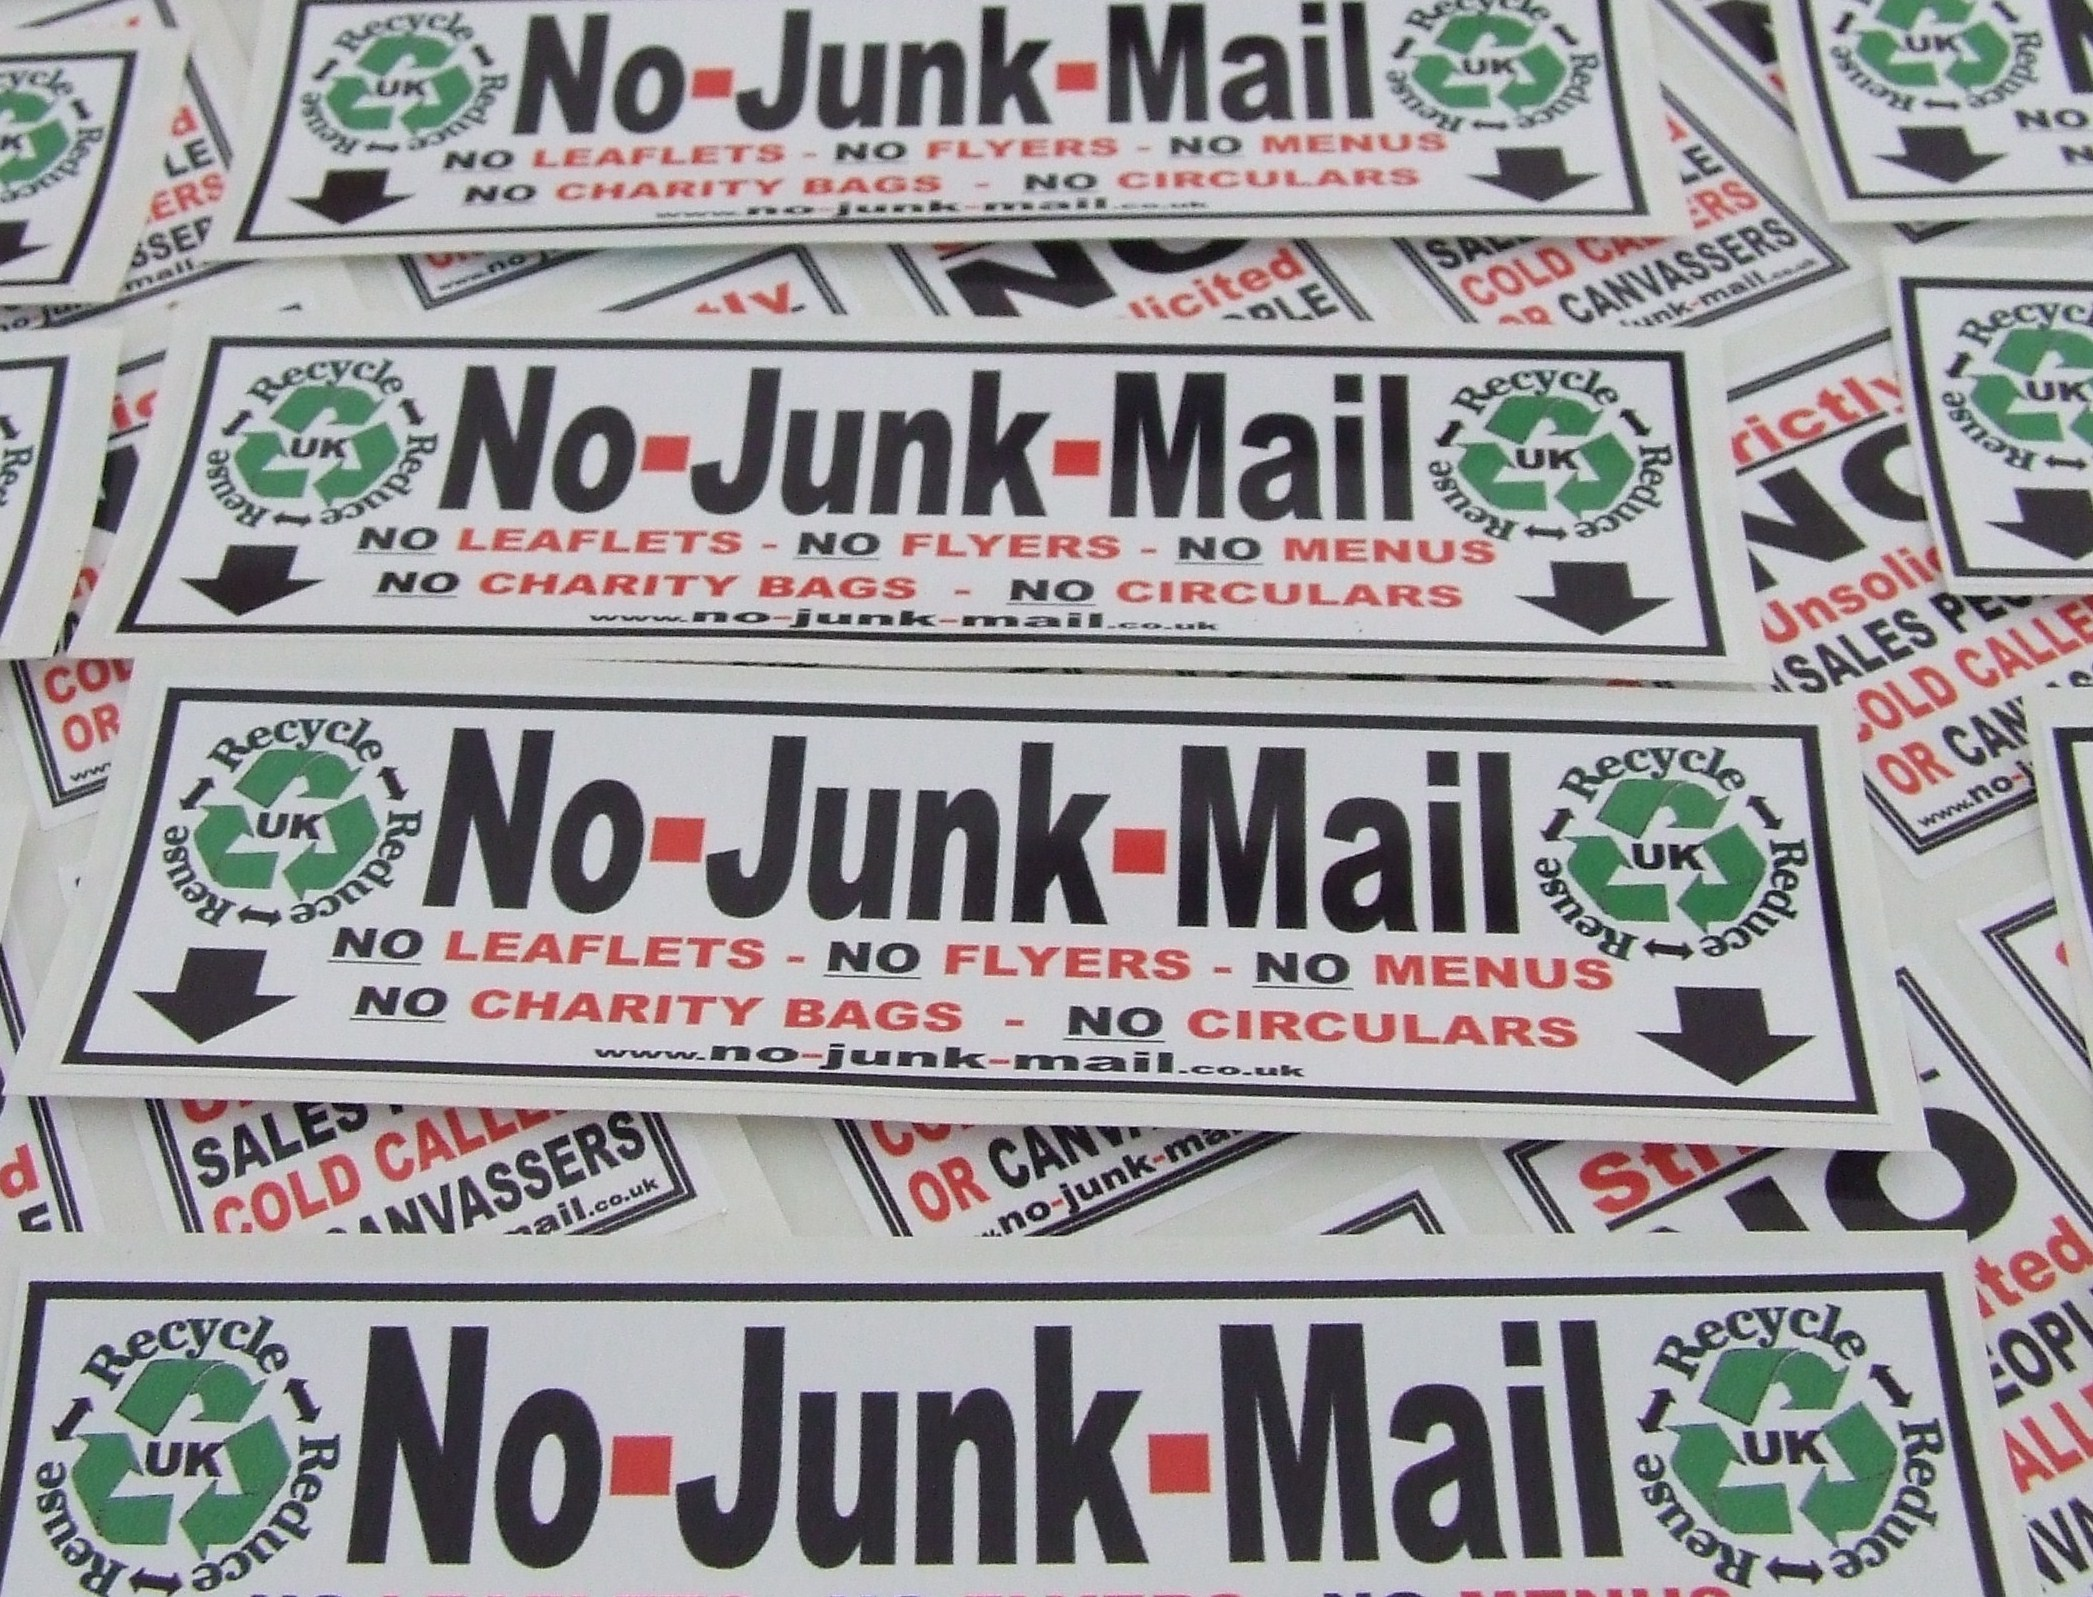 www.no-junk-mail.co.uk /